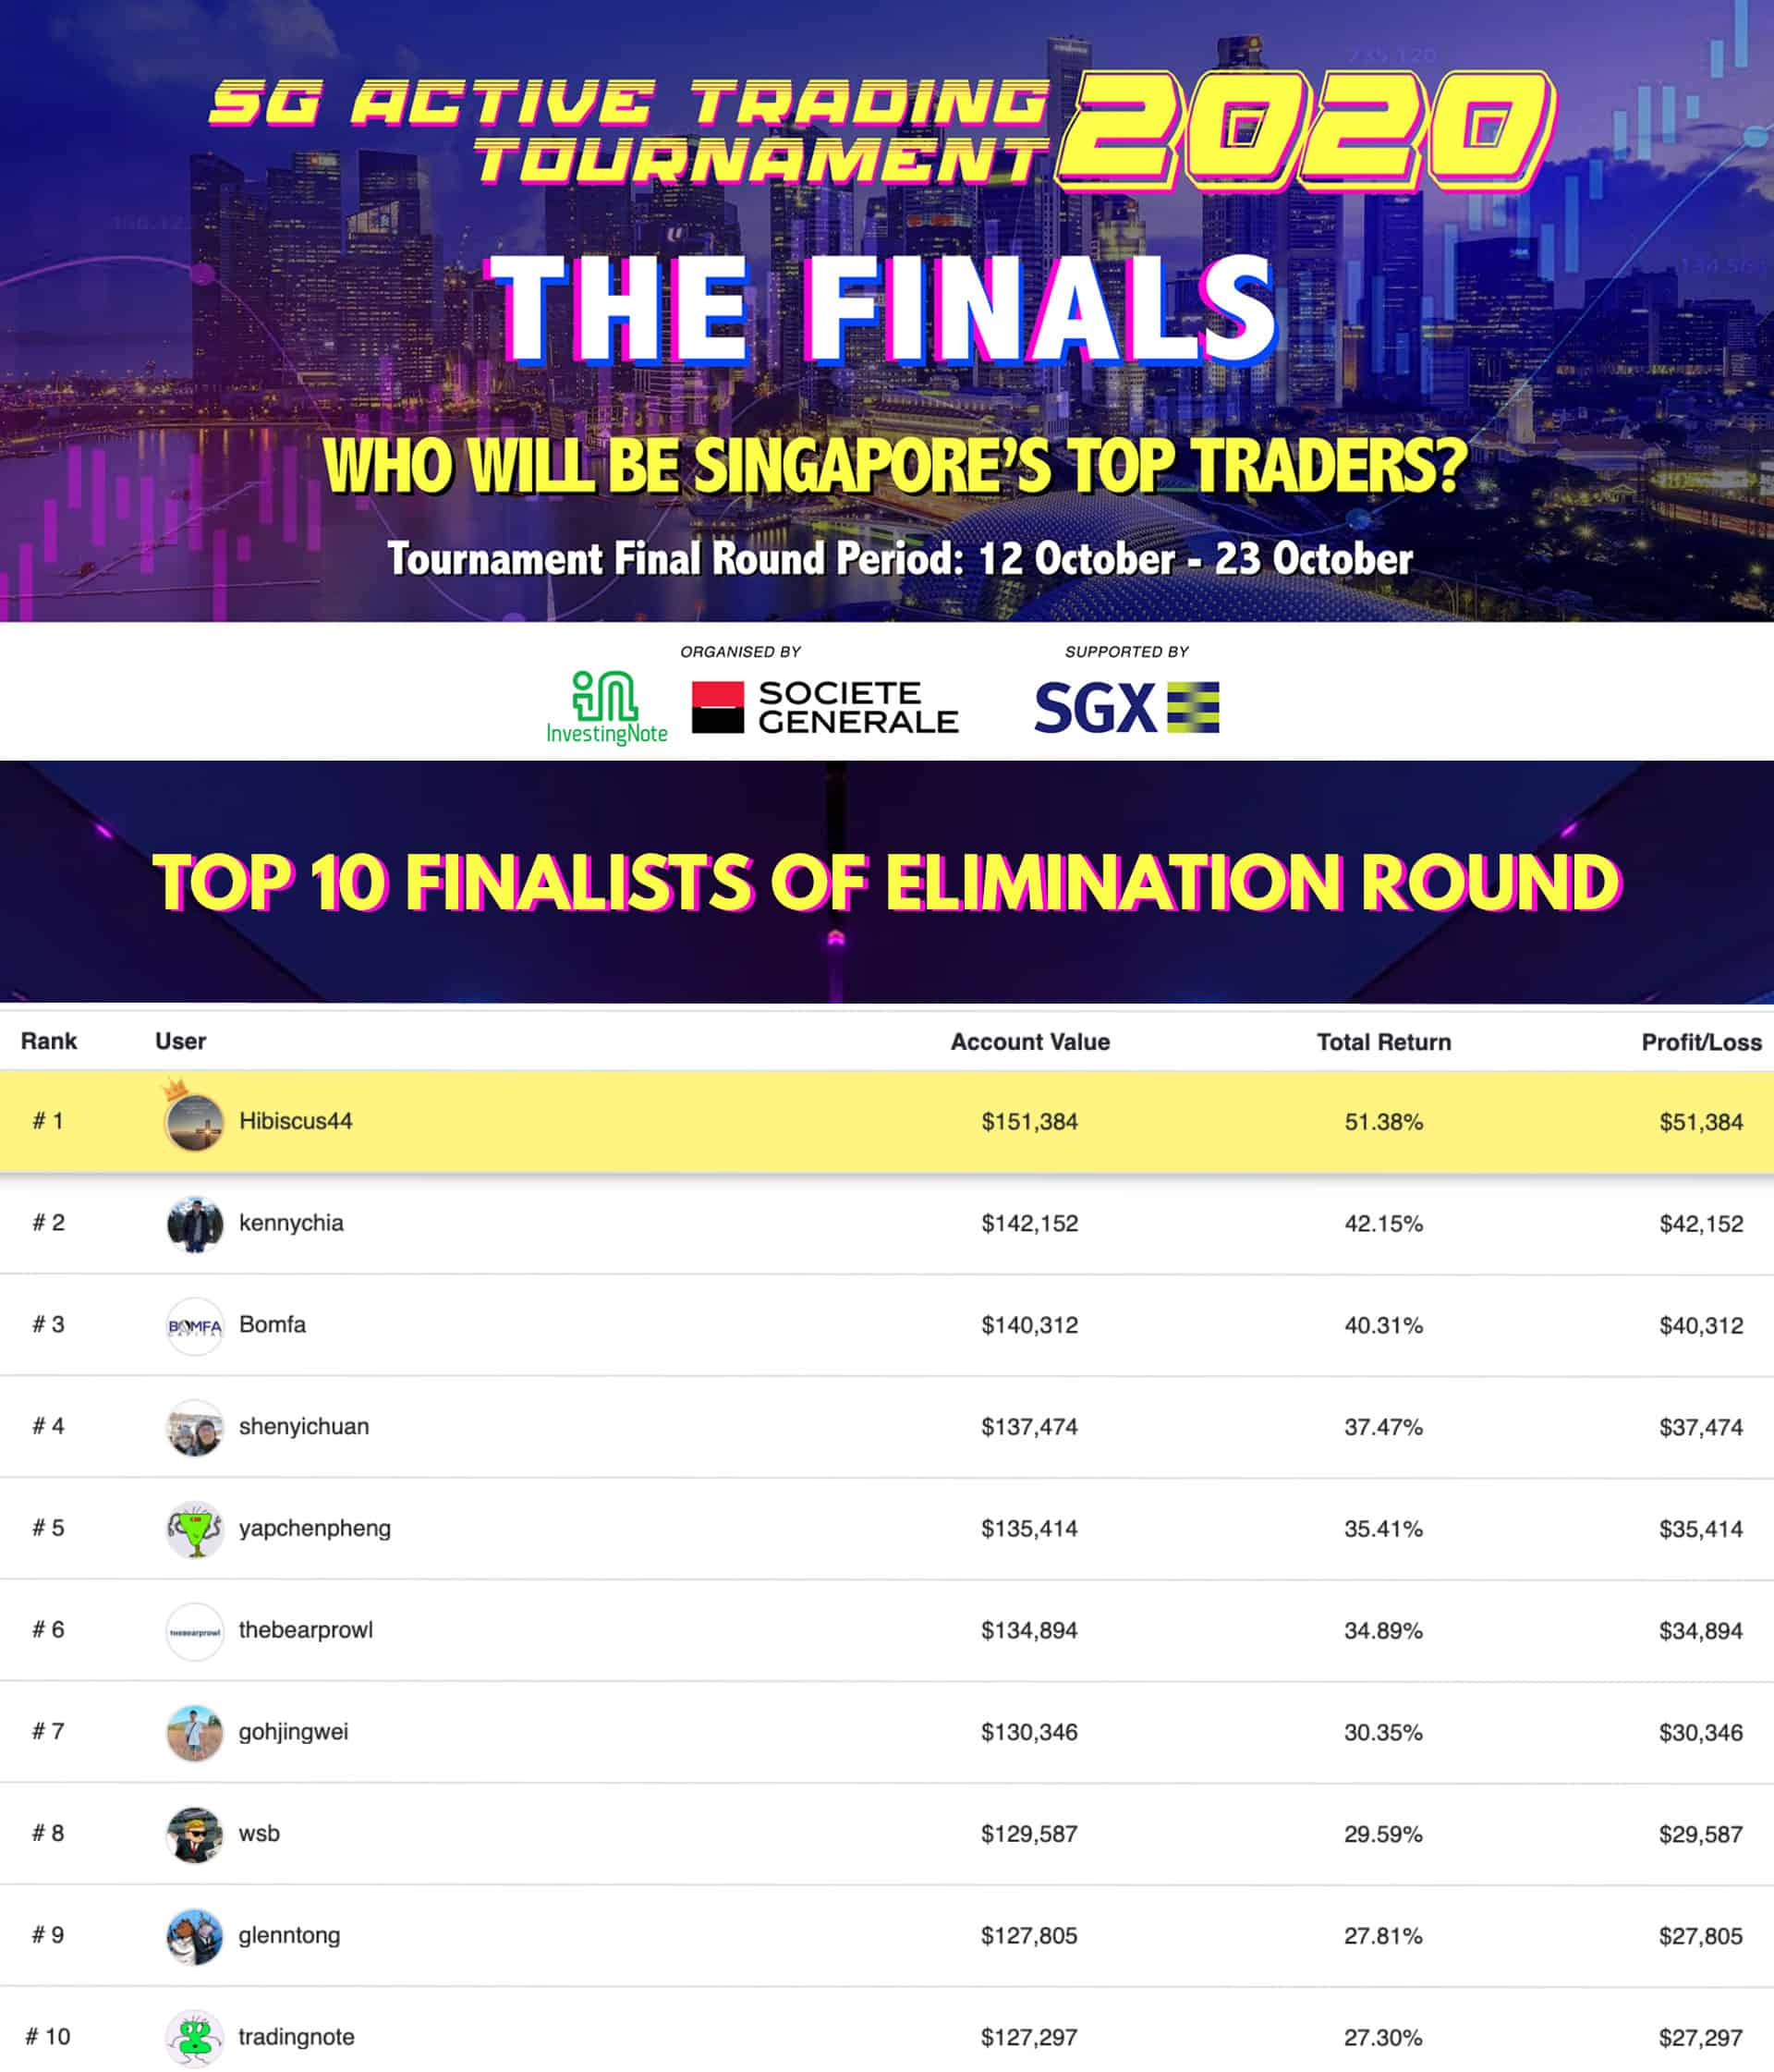 UPDATE: SG Active Trading Tournament Final Round